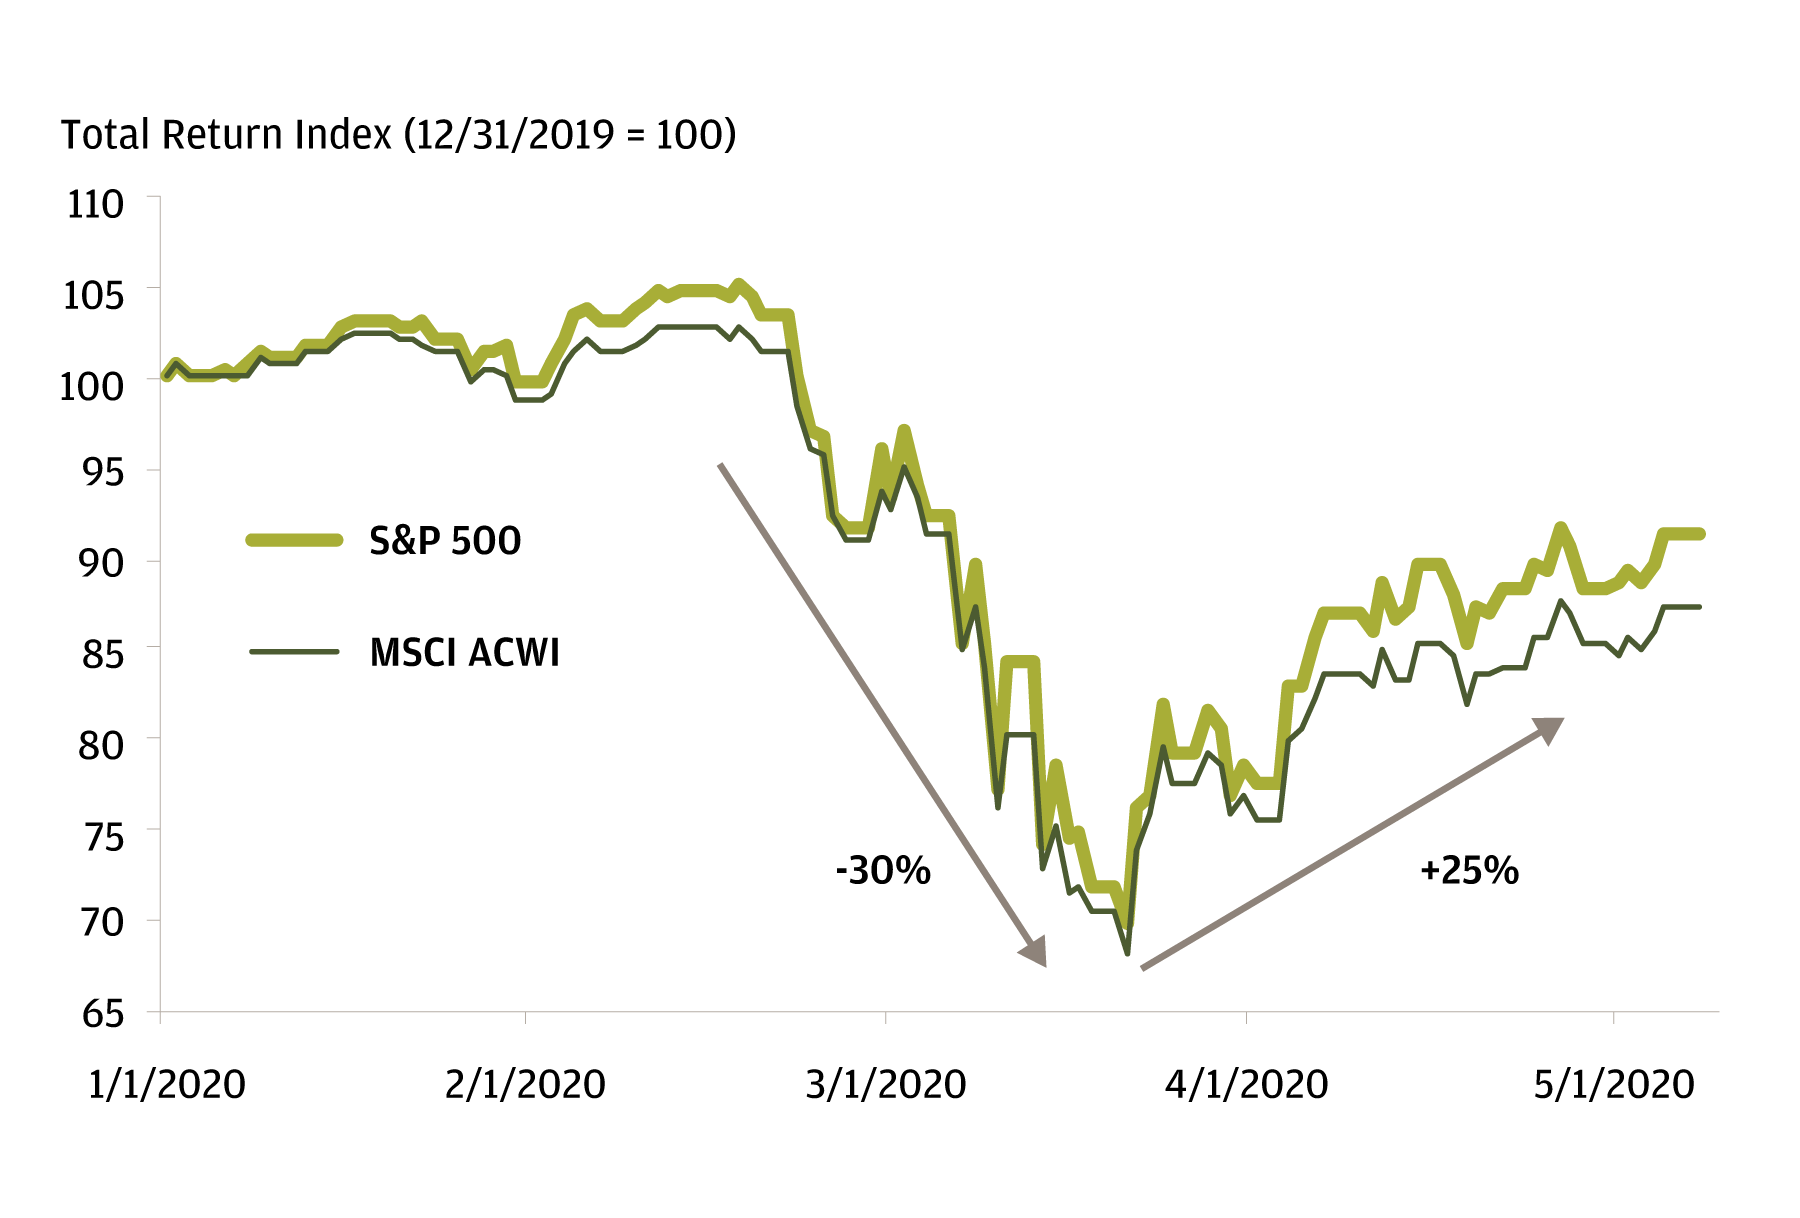 The chart shows the total return index of equity markets, MSCI ACWI and the S&P 500 from January 1, 2020, through May 7, 2020, indicating that the equity markets have signaled bouncing back starting at the end of March through May, since the total return of equity markets have increased 25% from their lowest point.